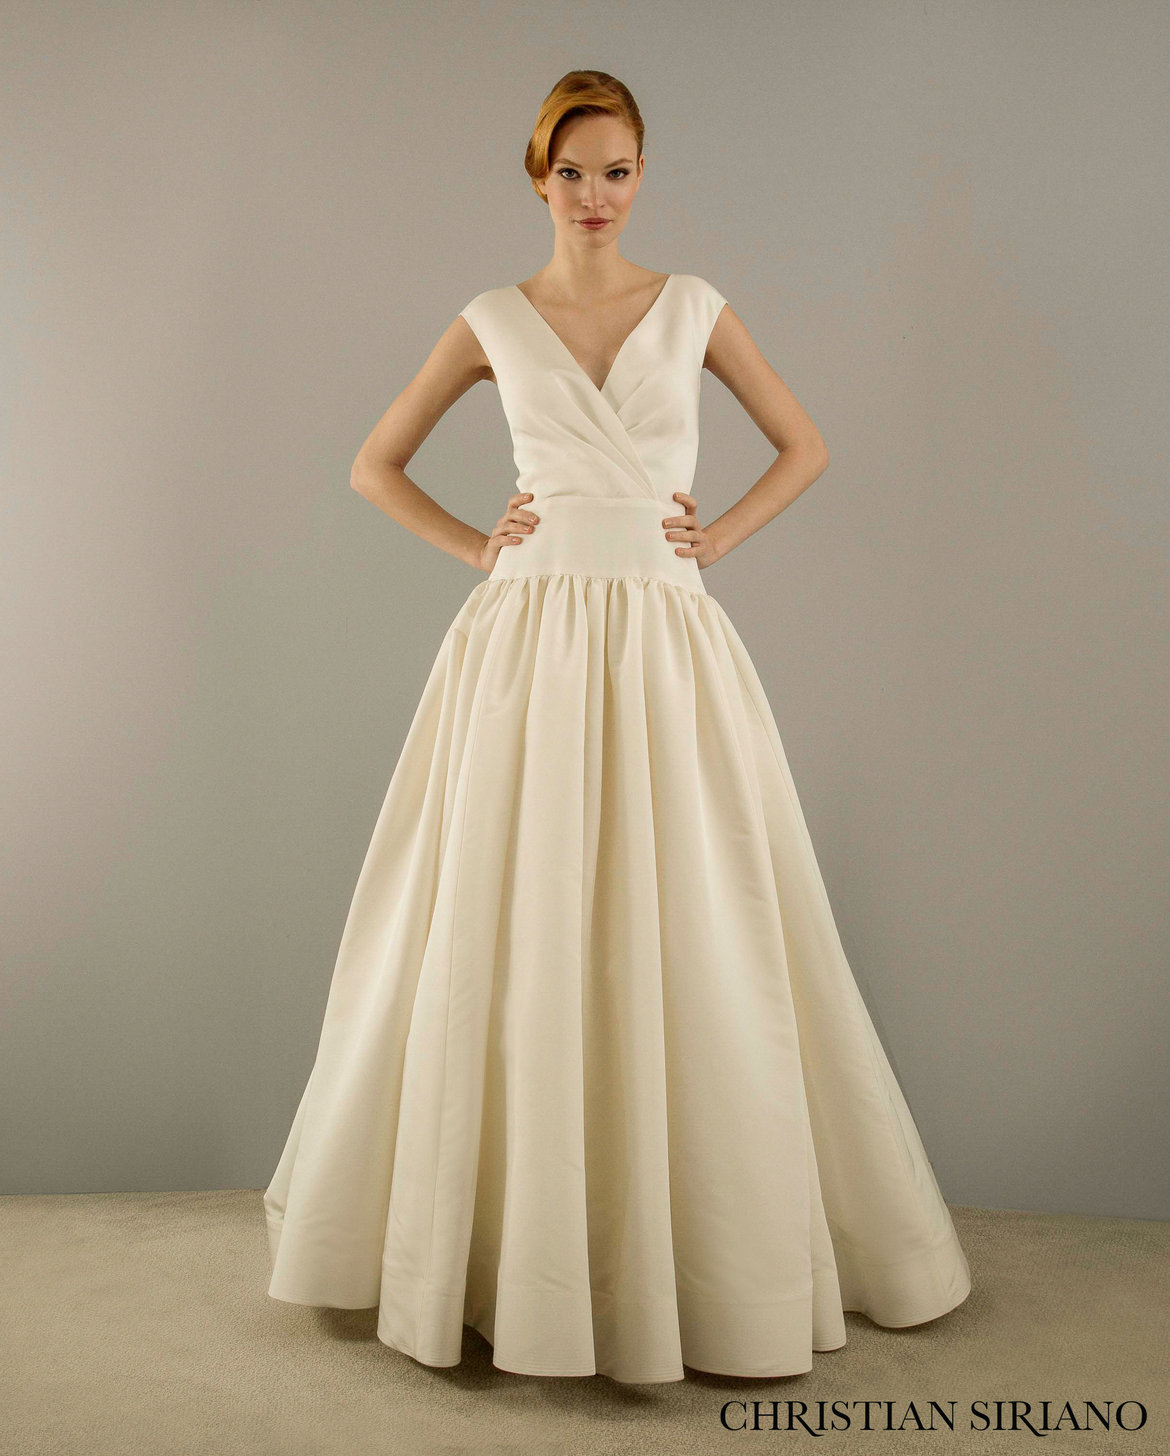 First Look: Christian Siriano's New Bridal Collection For